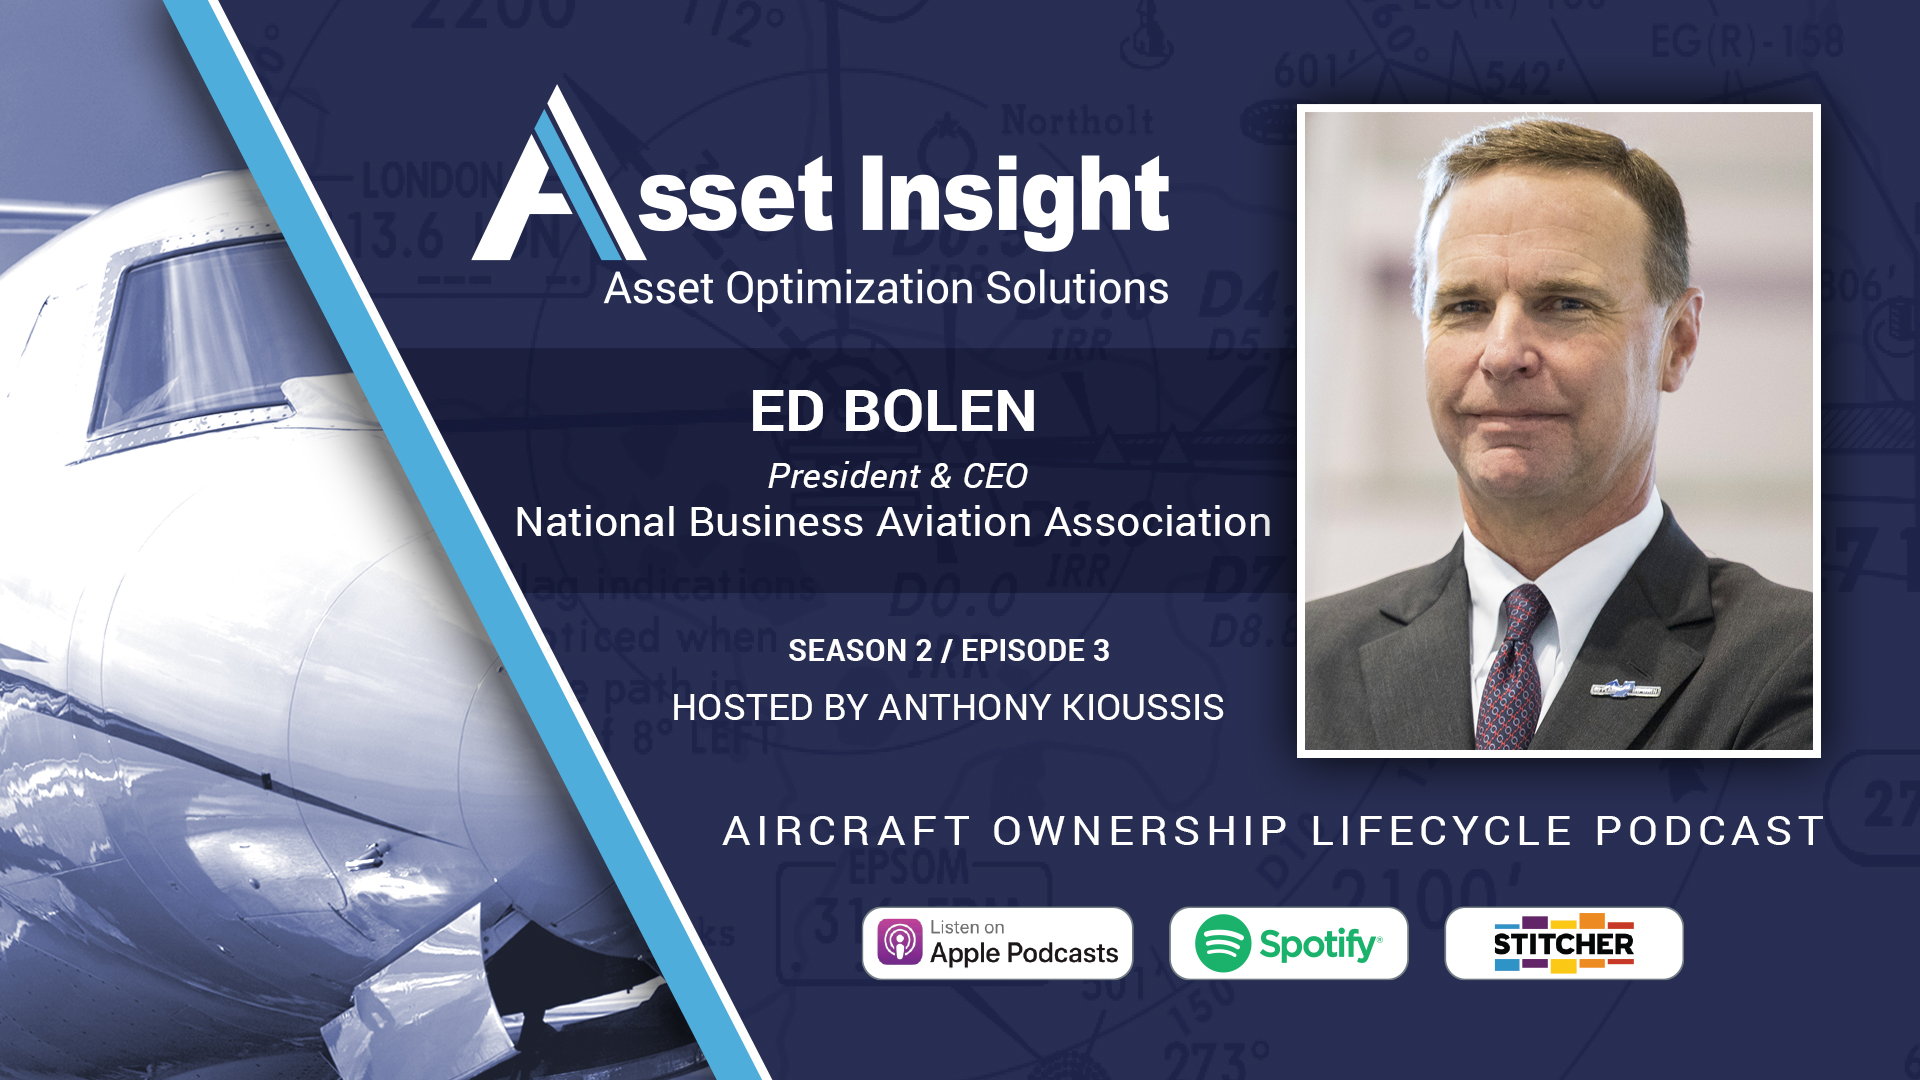 Ed Bolen, The National Business Aviation Association